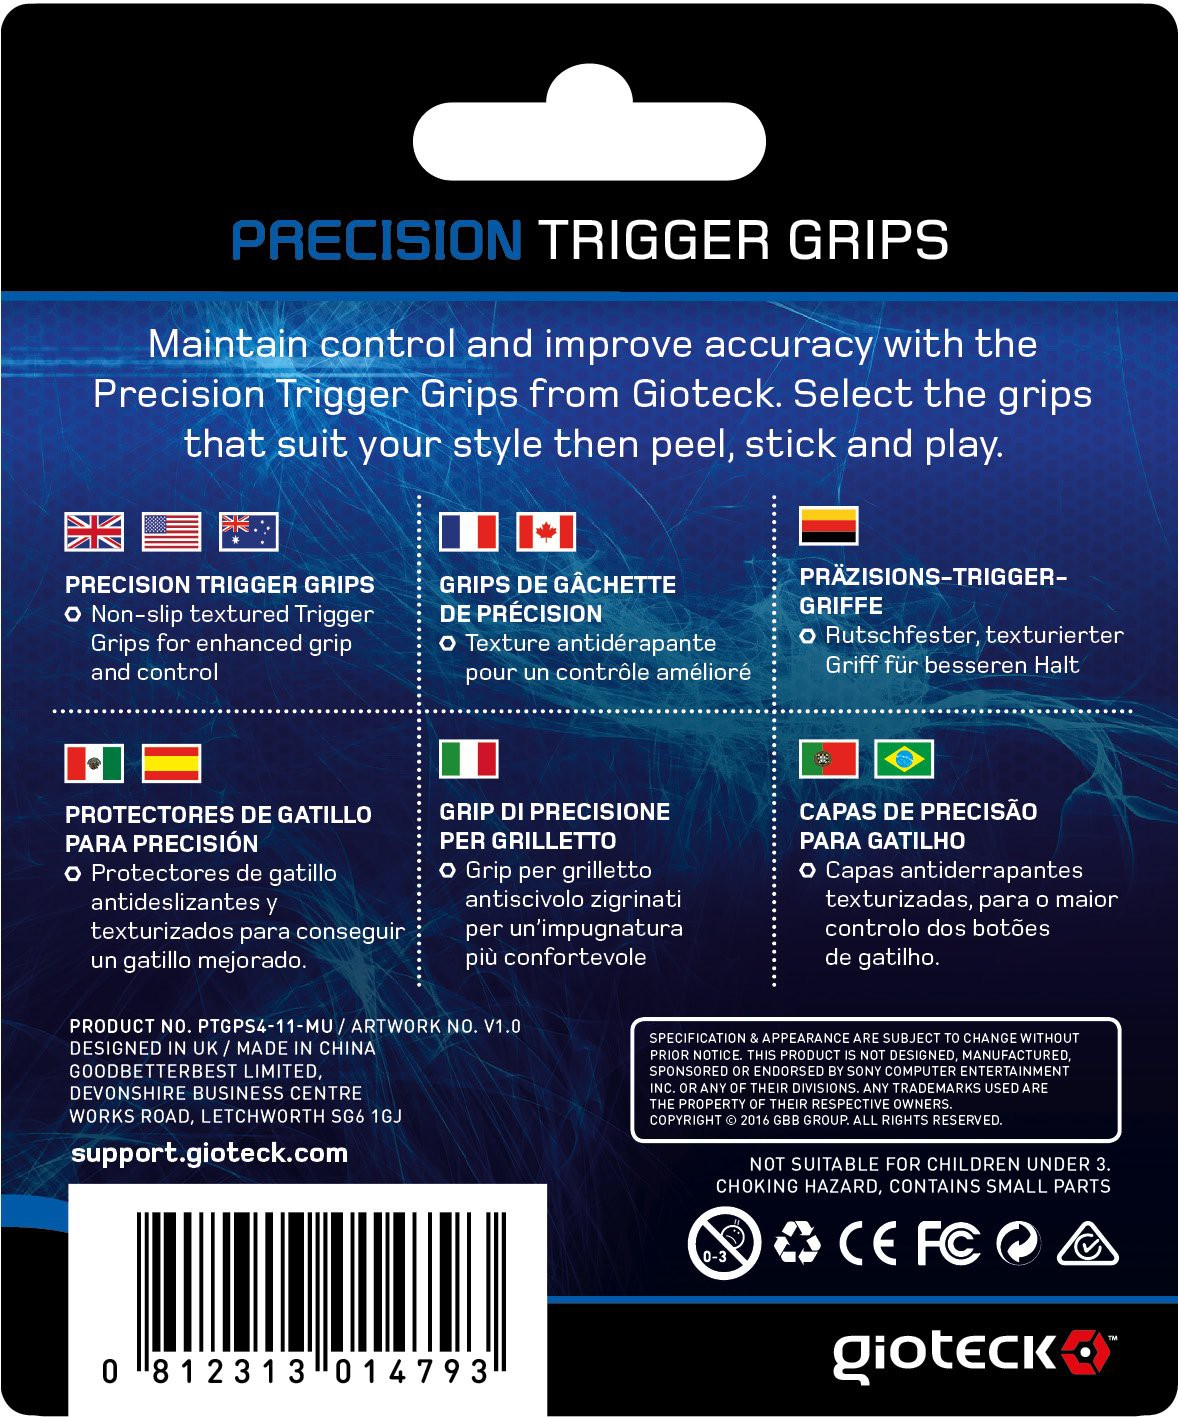 PS4 Gioteck Precision Trigger Grips